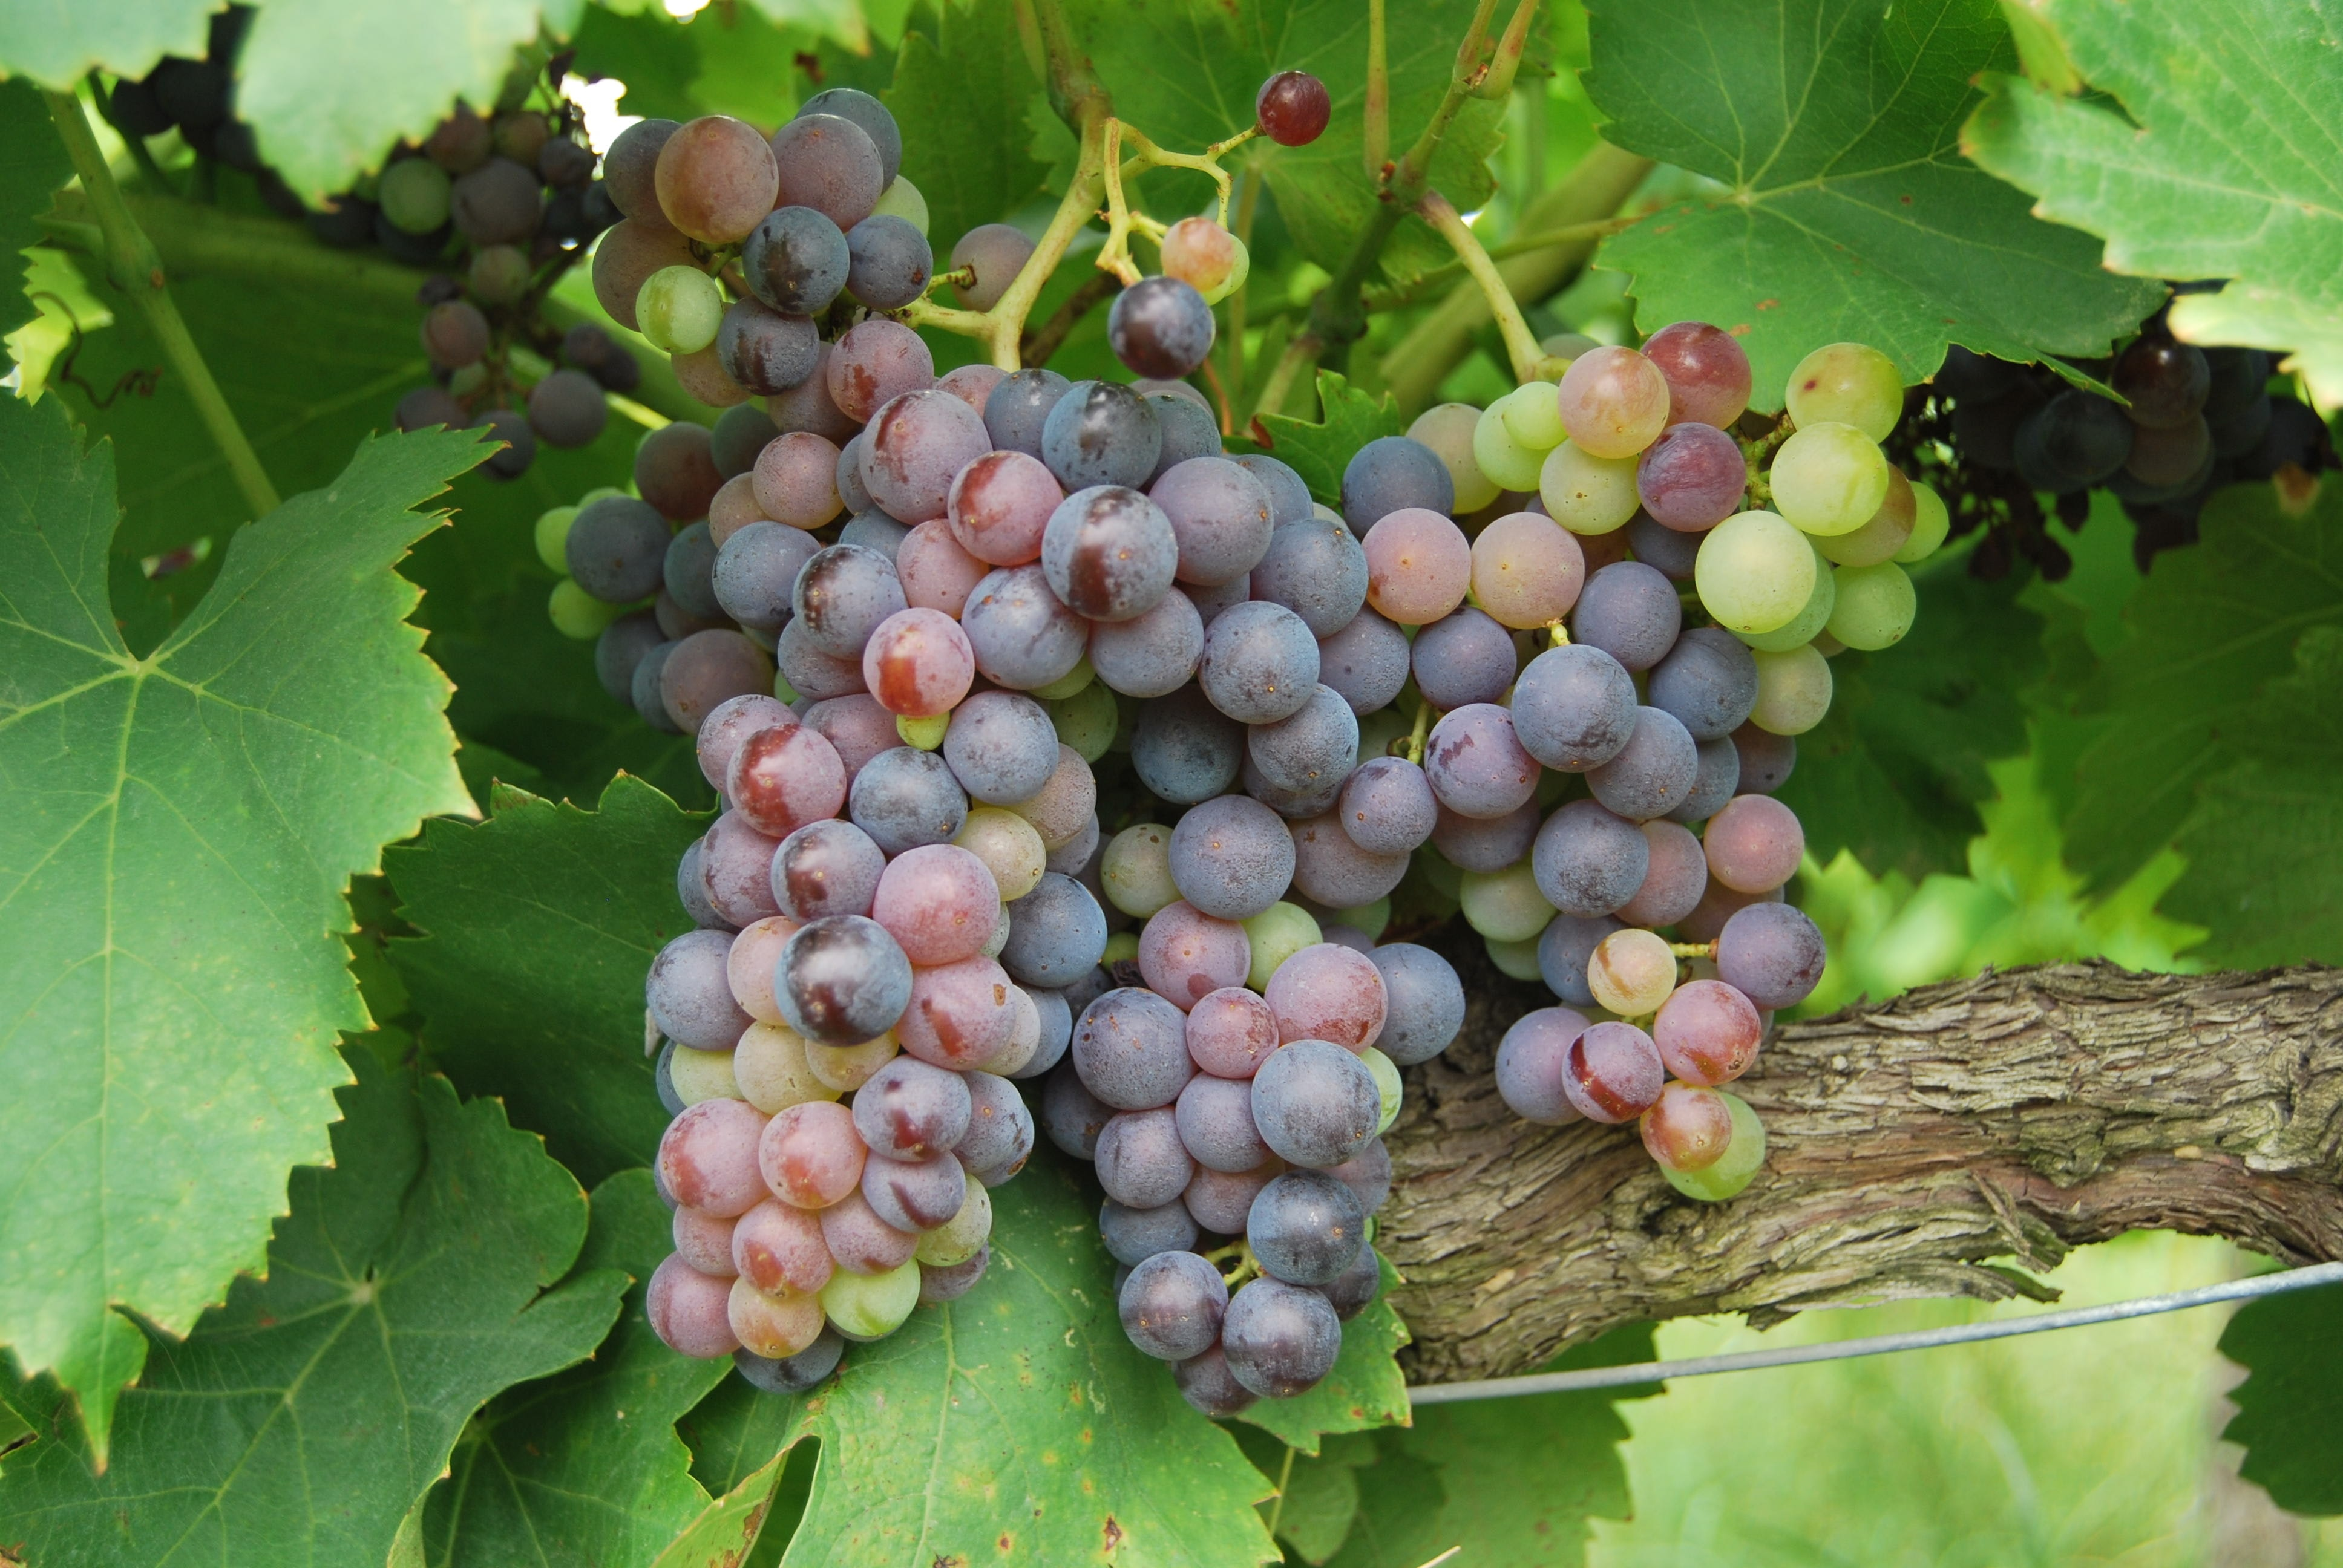 grapes fruit surrounded by leaves